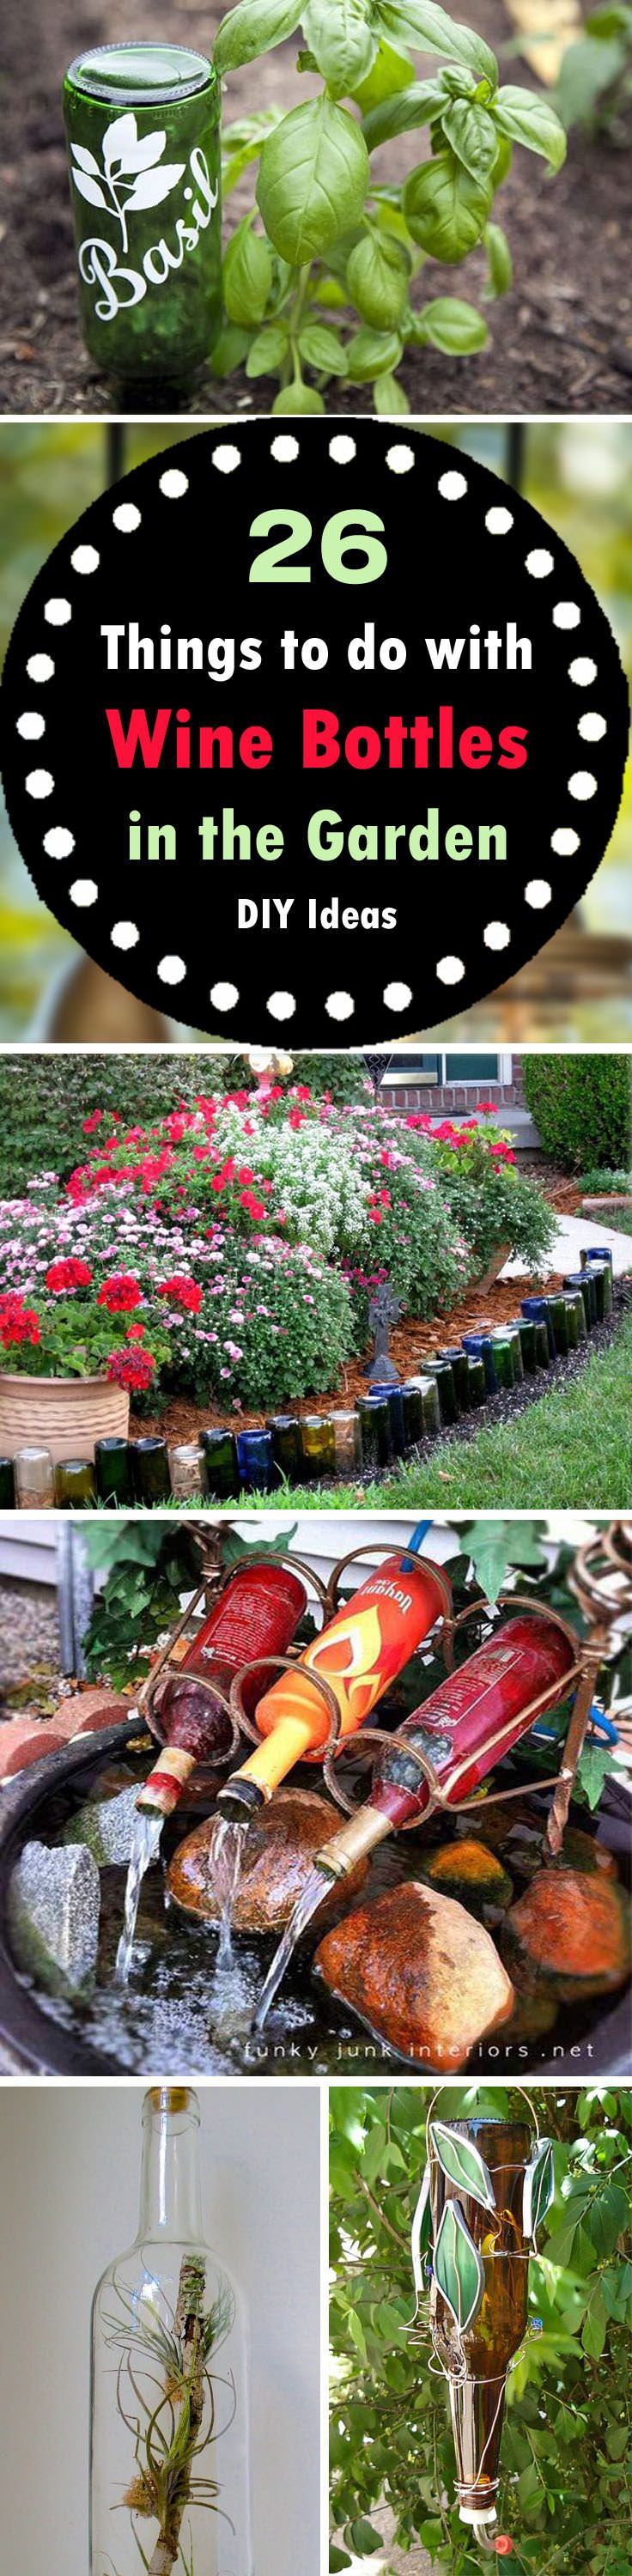 Your home and garden diy